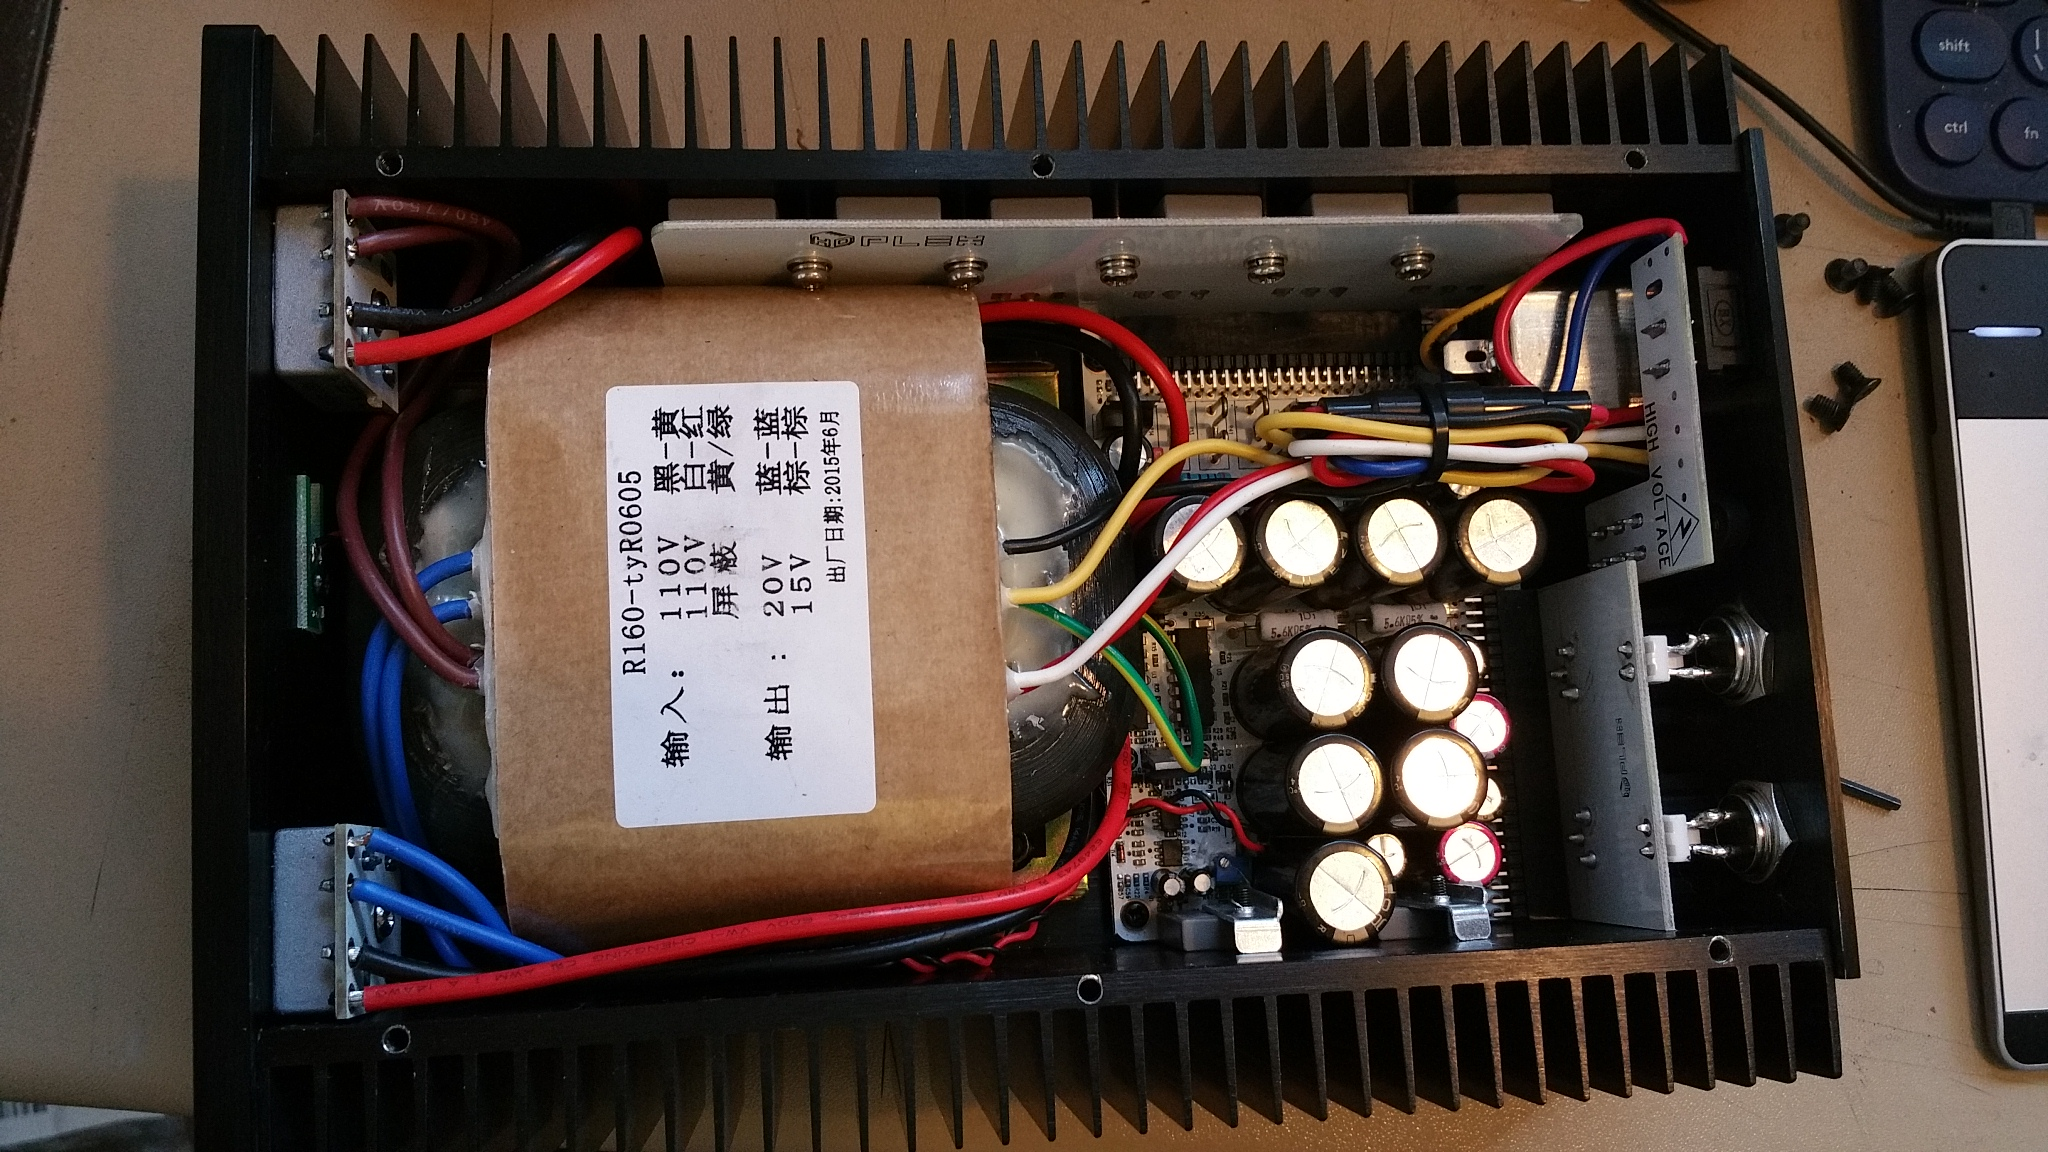 Linear Psu Roundup Archive The Art Of Sound Forum Fan 3wire To Power Supply 4wire Takeoff Cable Case3pin